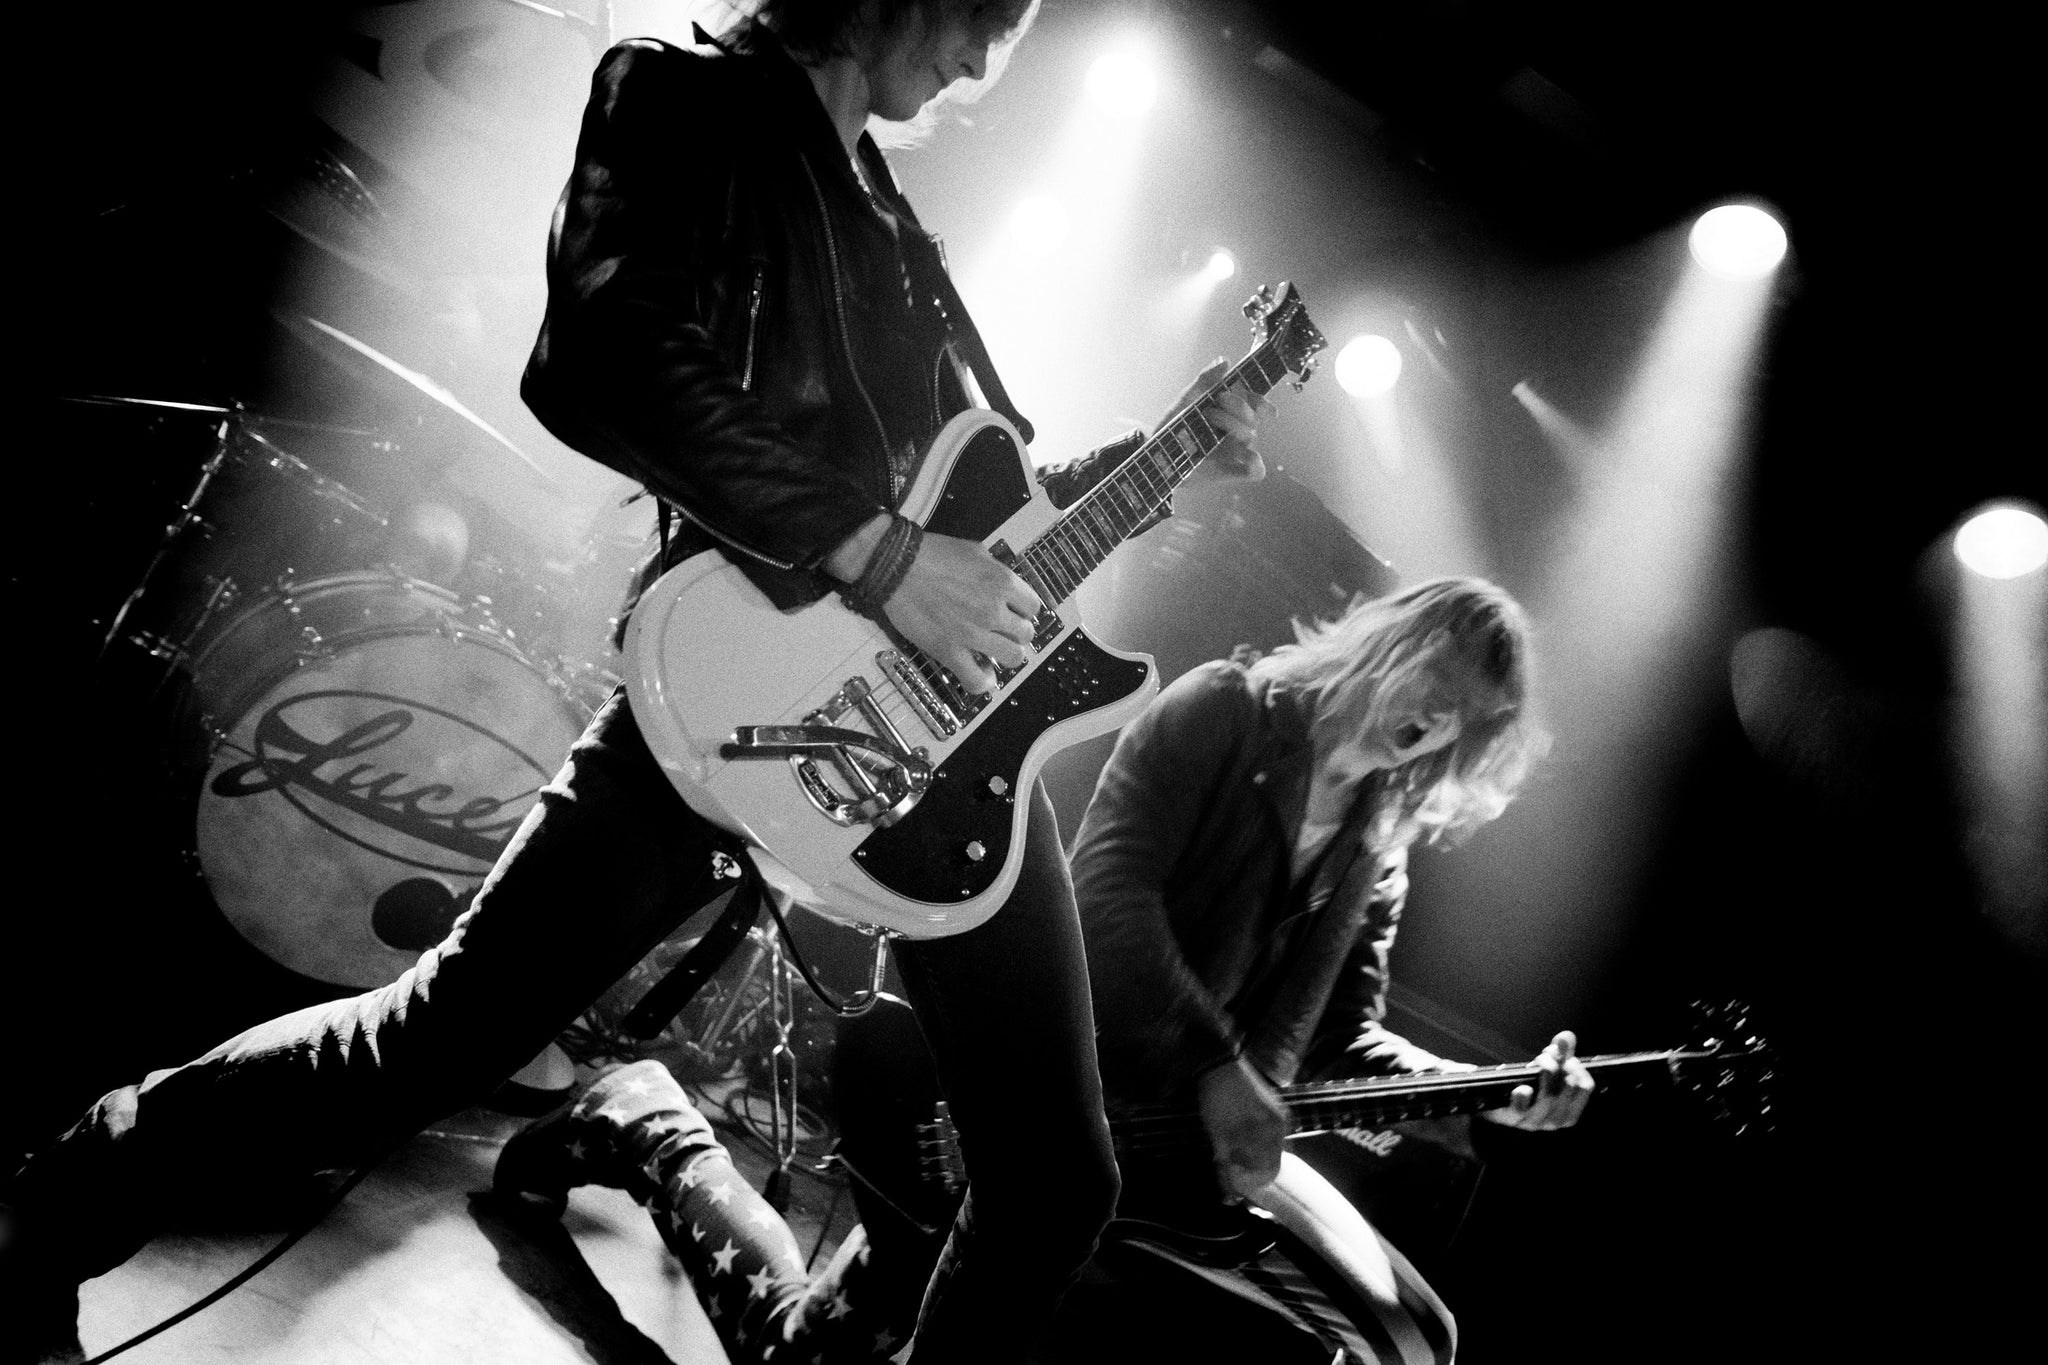 Fuji XF 18mm f2 on Fuji Xpro-1